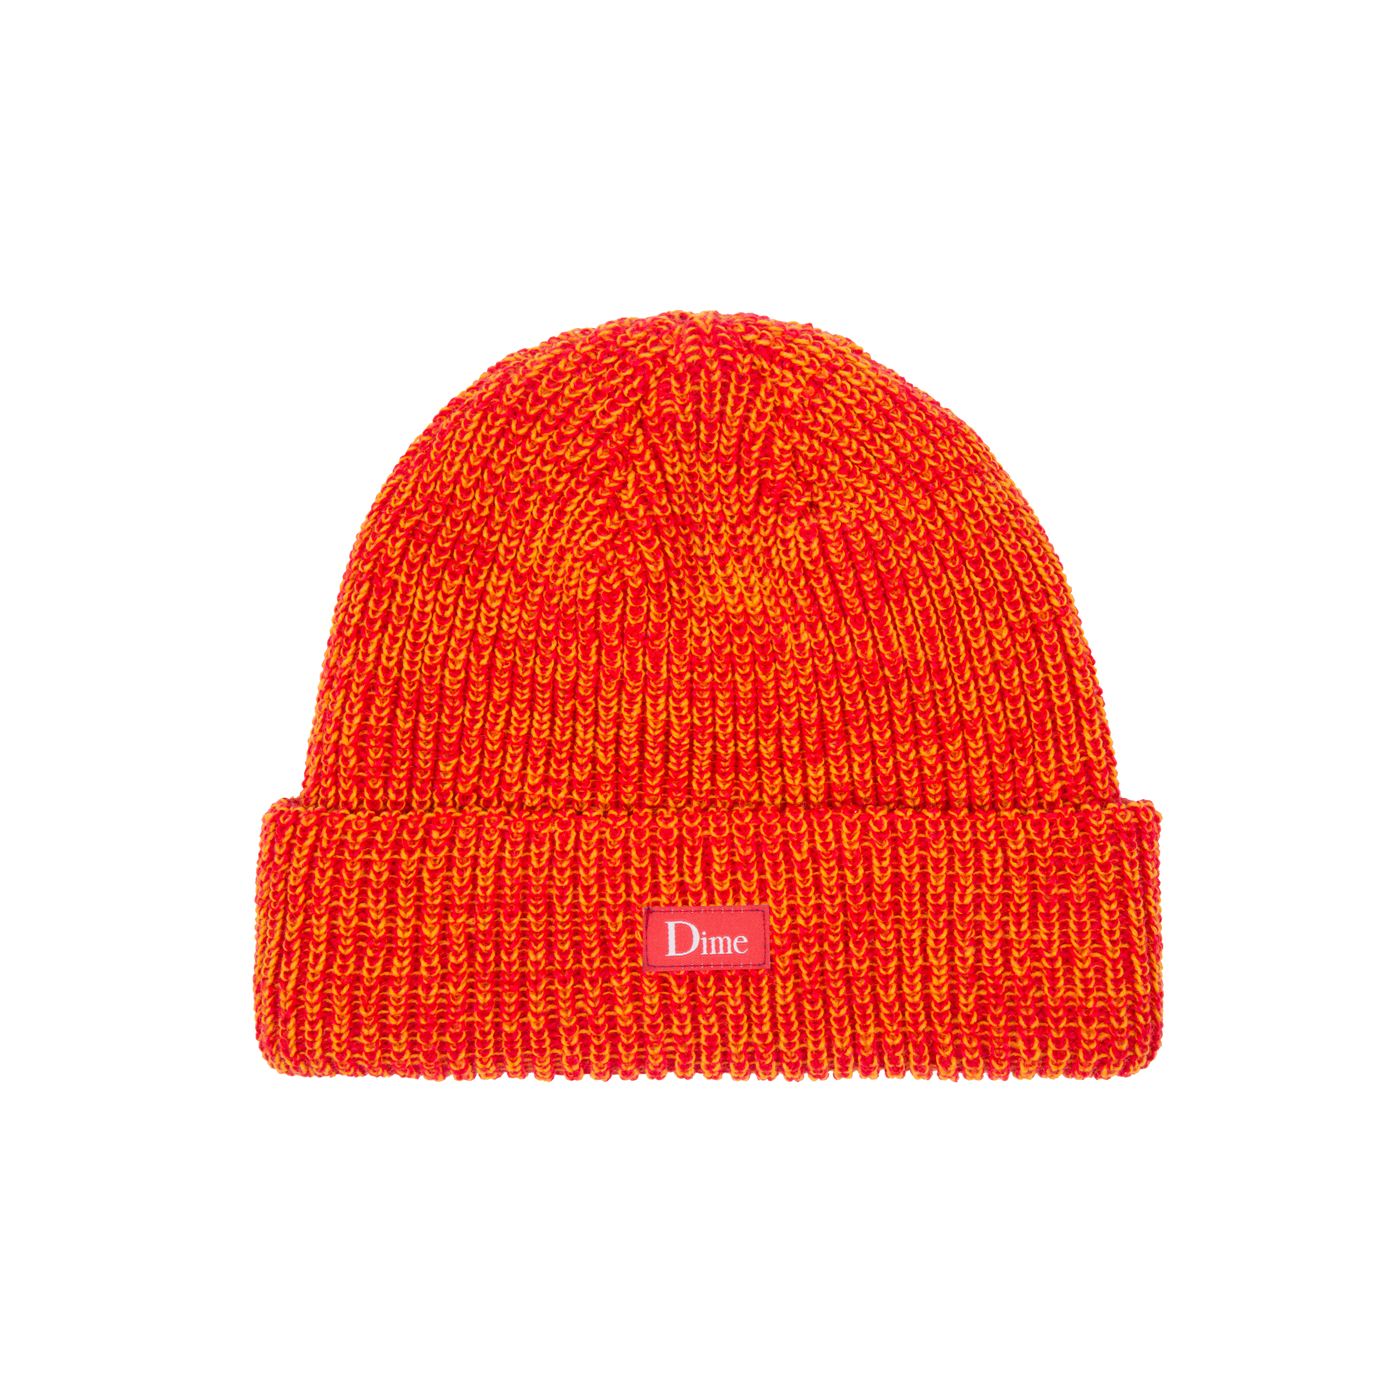 Dime Marled Beanie Product Photo #1